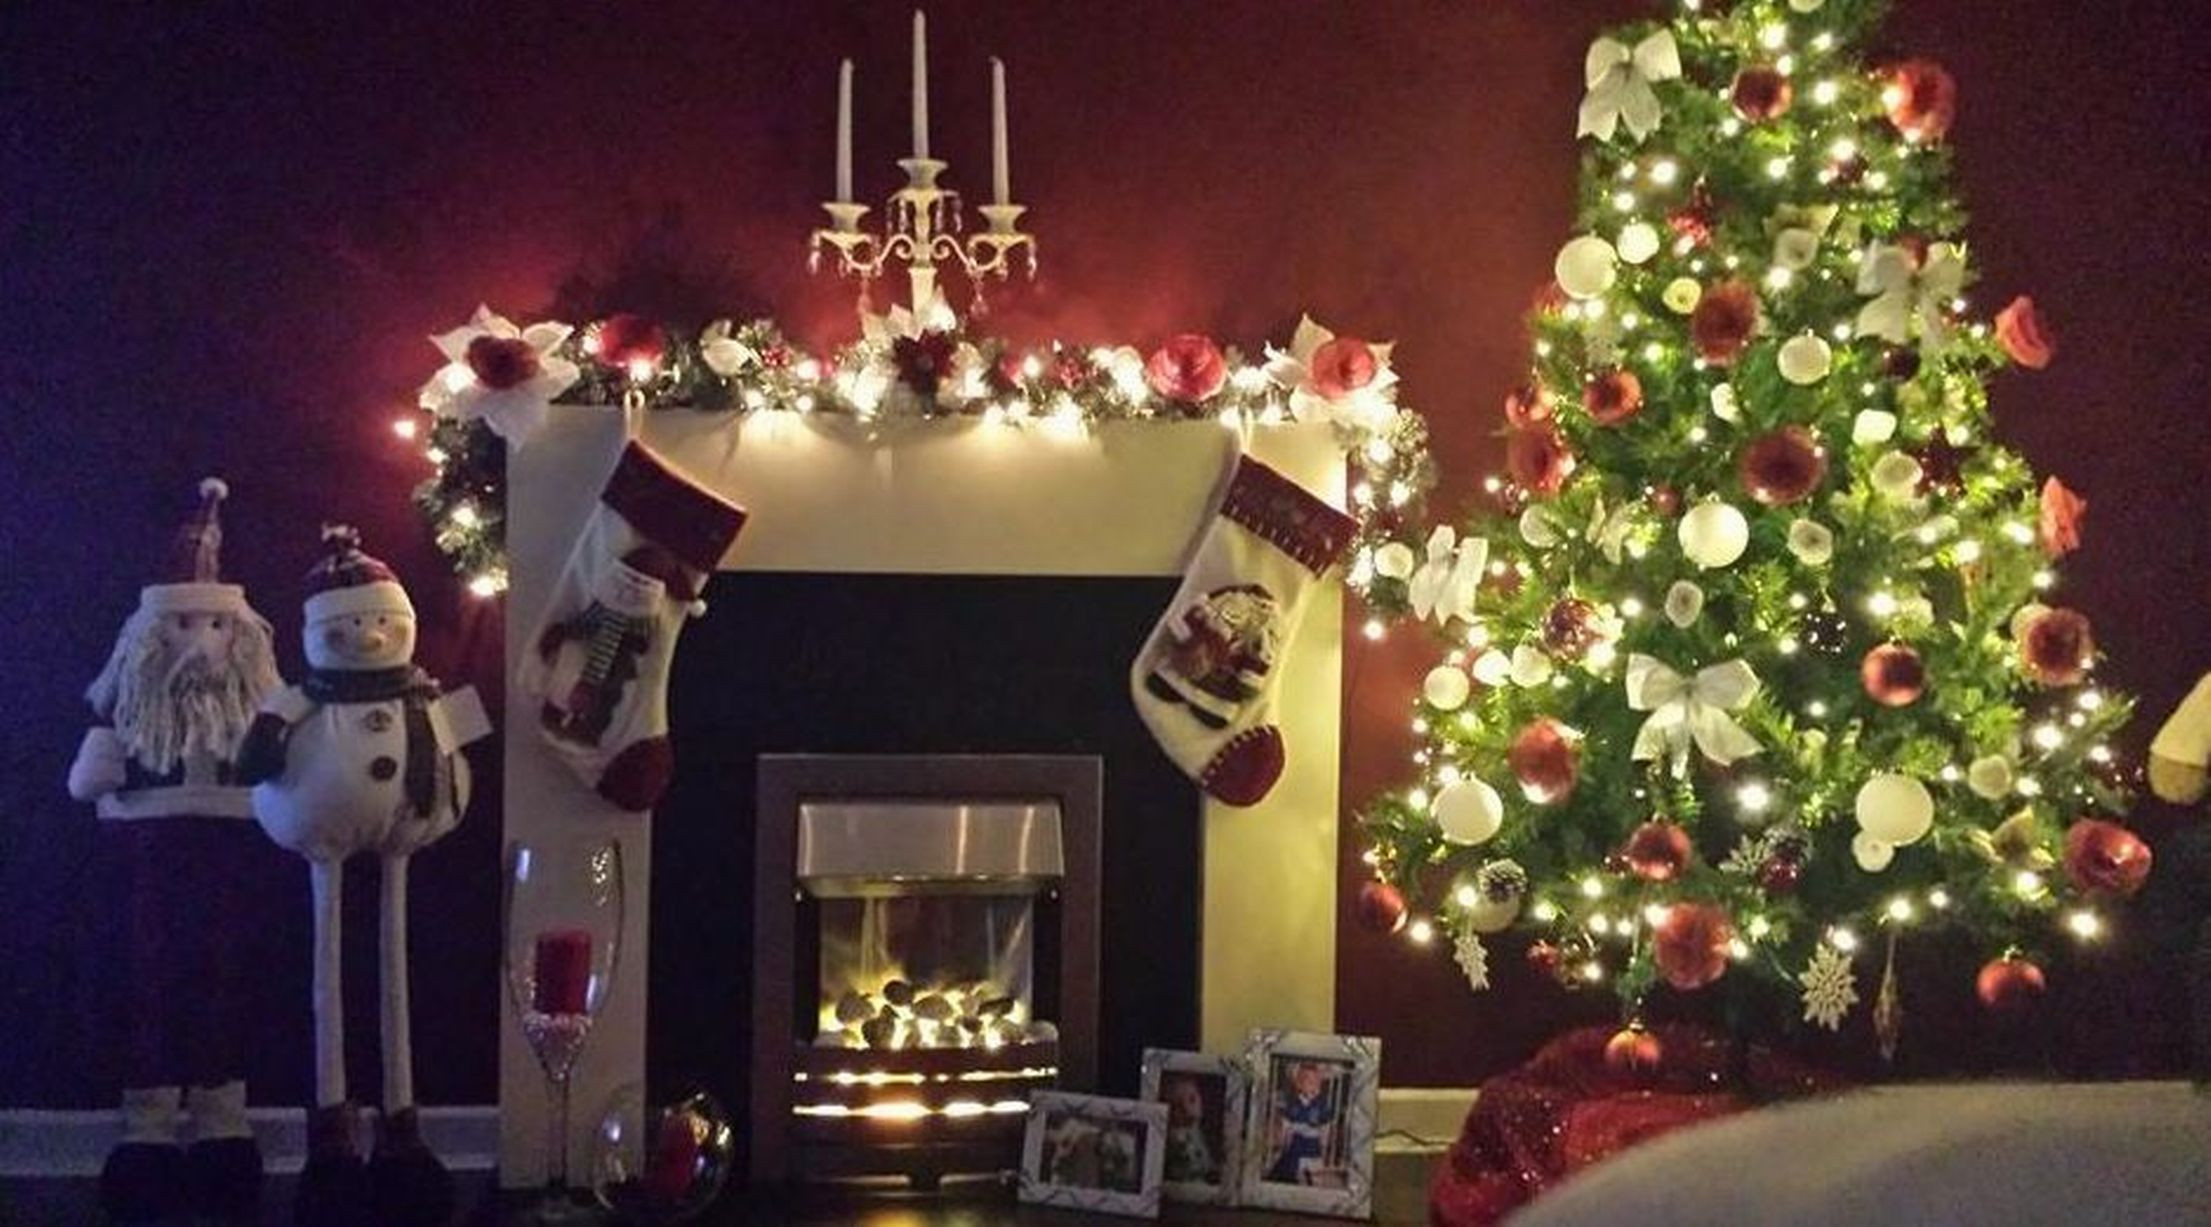 Christmas Tree Decorations Lovely Christmas Tree Decoration Ideas 2016 Of Superb 49 Pics Christmas Tree Decorations